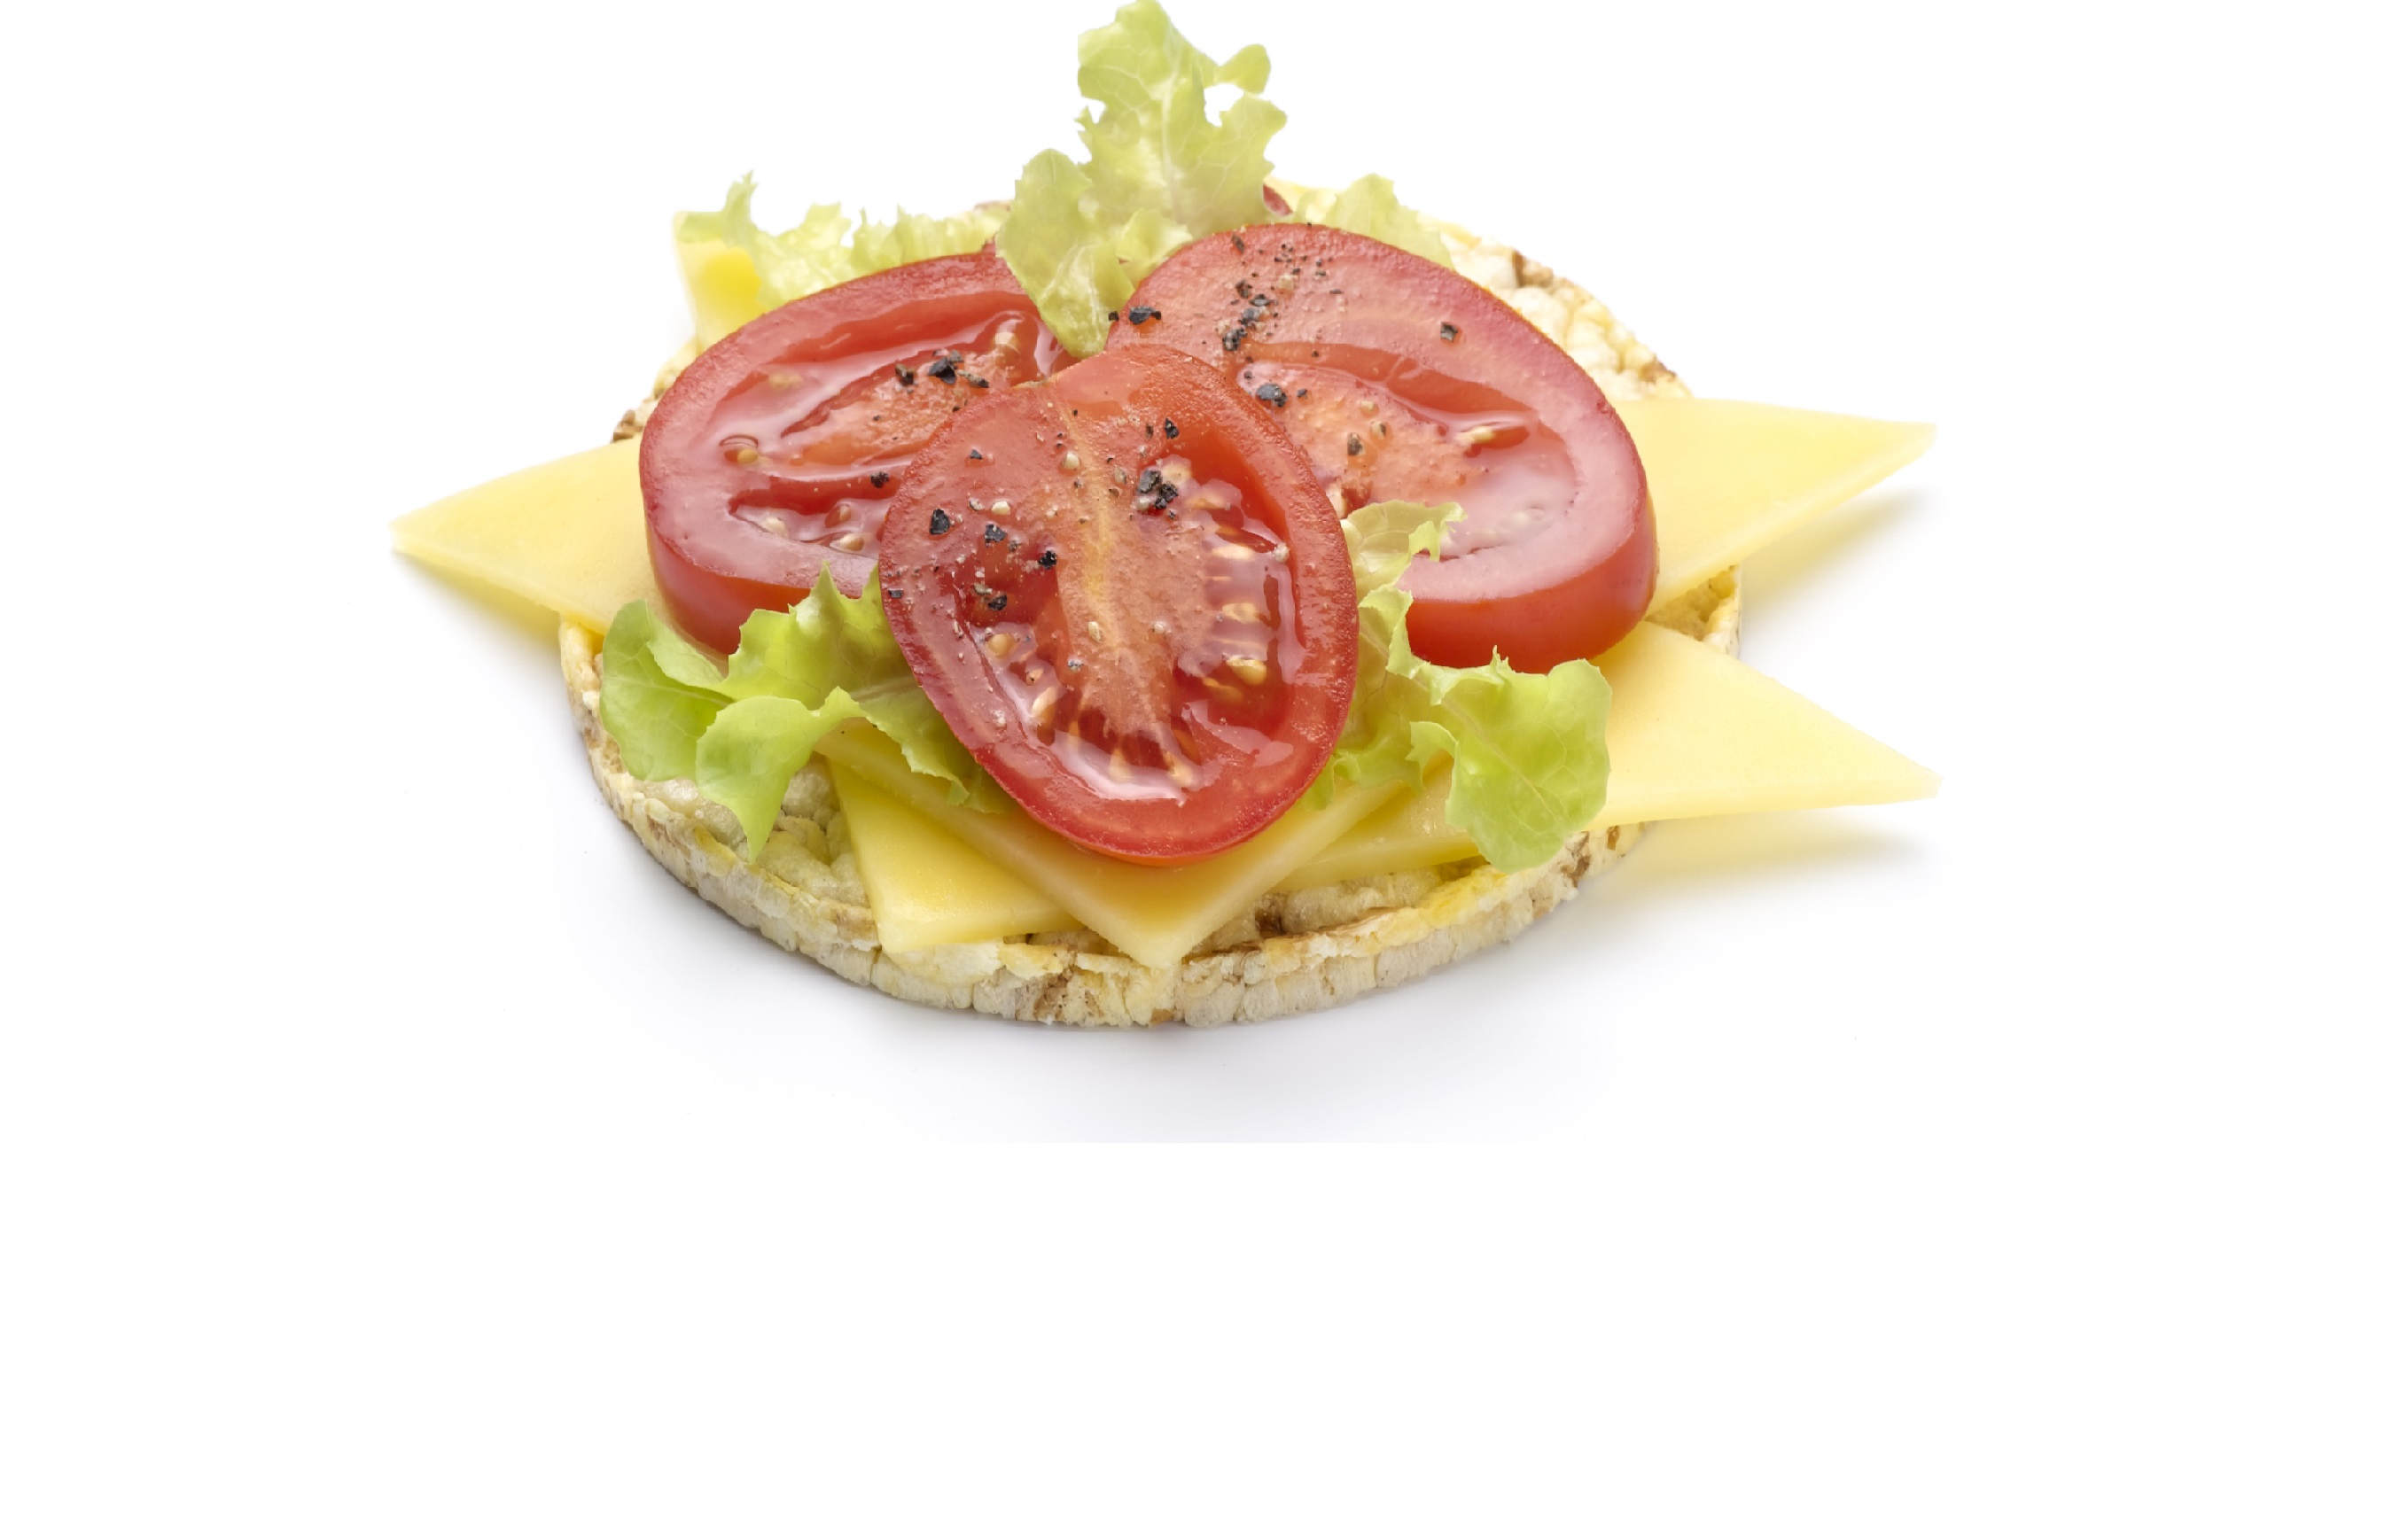 Quick snack option of tomato, cheese & lettuce on Corn Thins slices